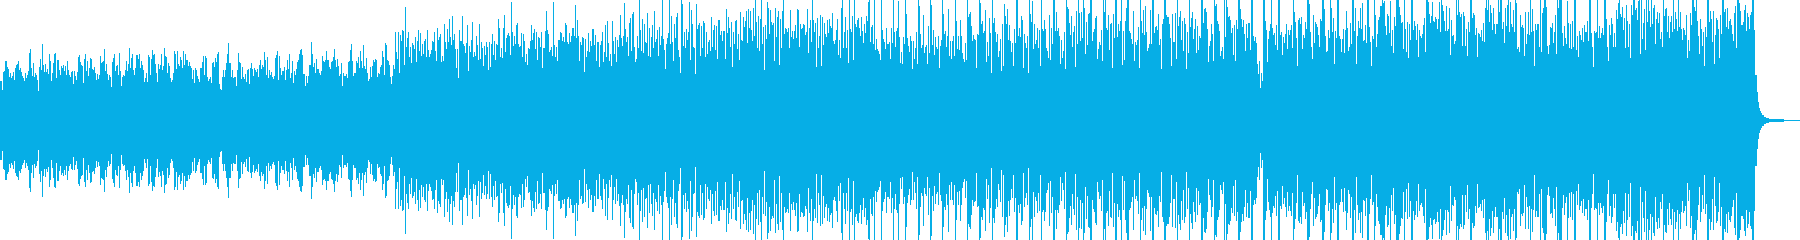 Music box and string / sweet odd time signature dance A2's reproduced waveform